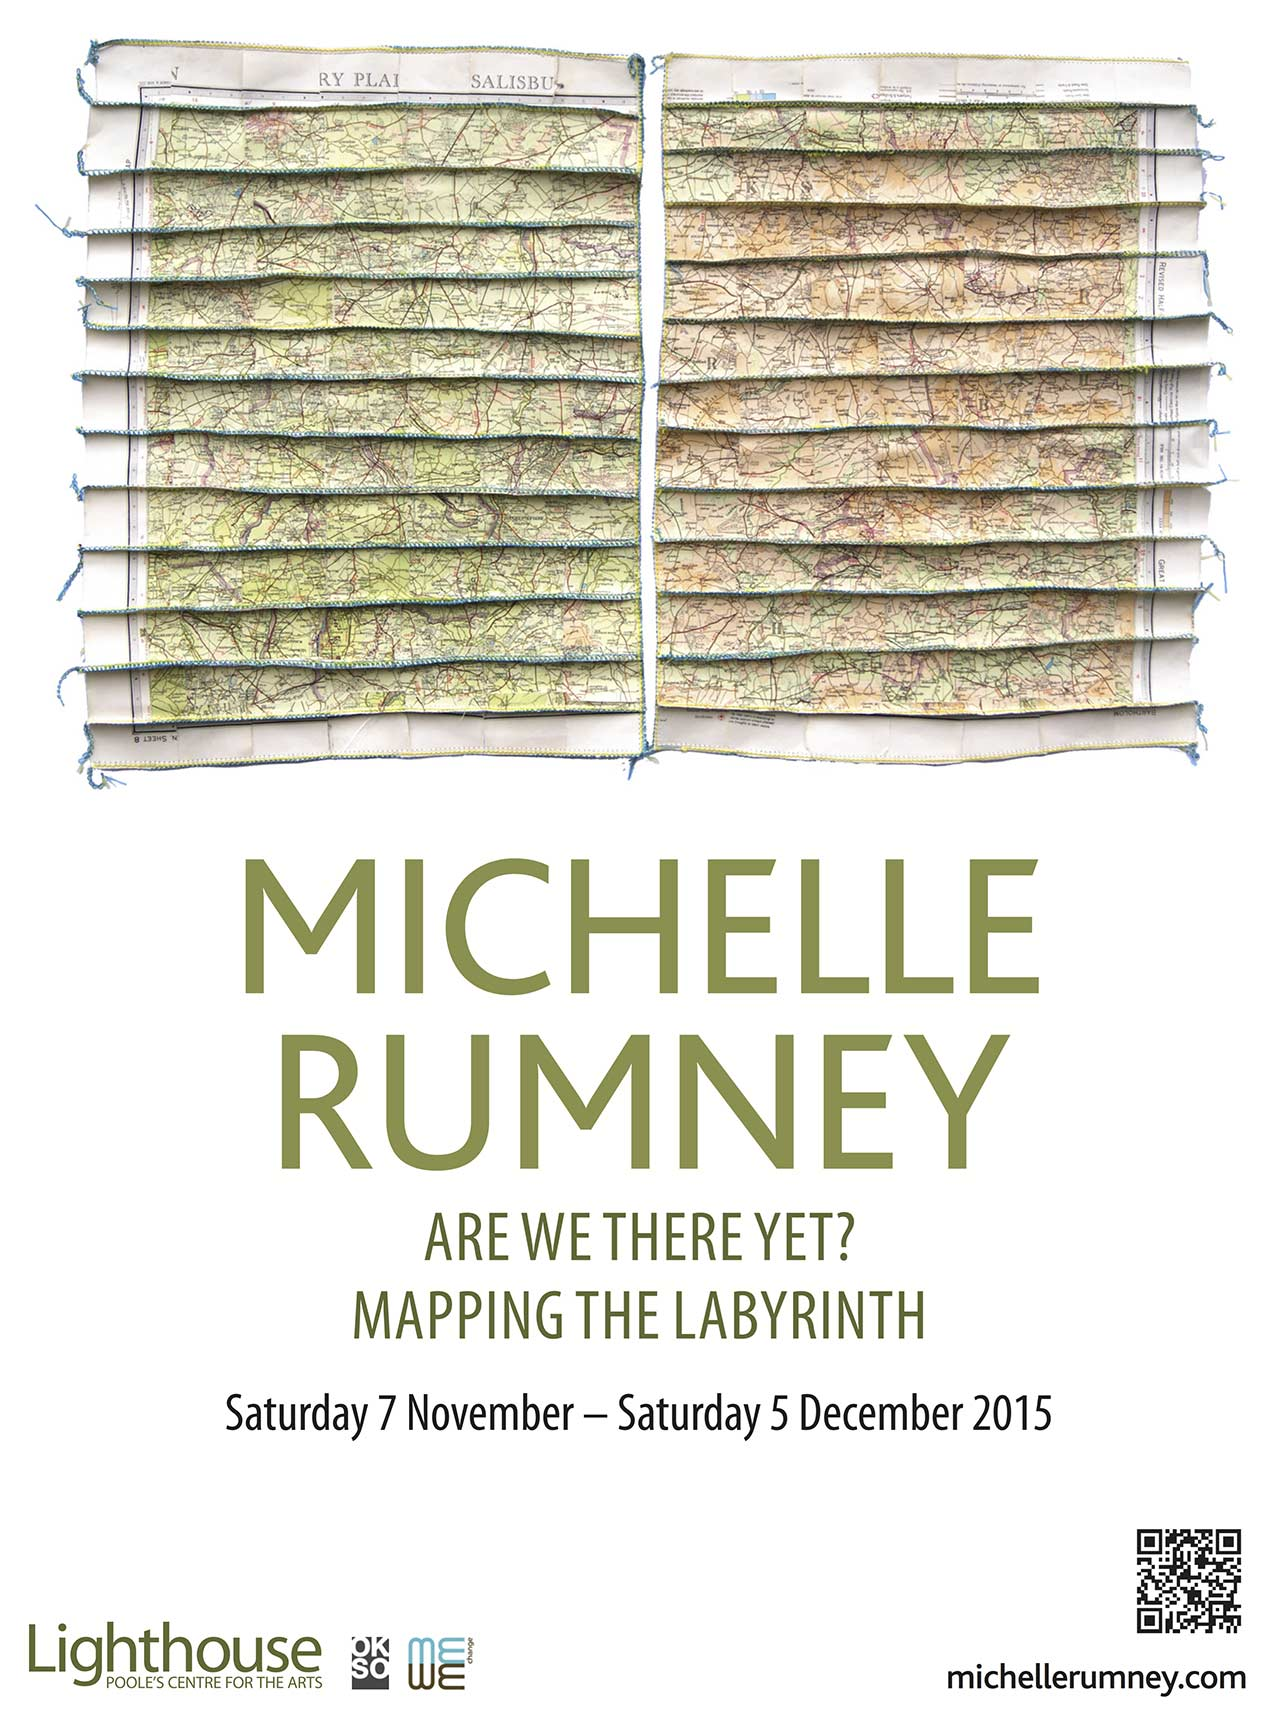 Poster for exhibition at Lighthouse Poole by Michelle Rumney - Are we there yet? Mapping the Labyrinth""